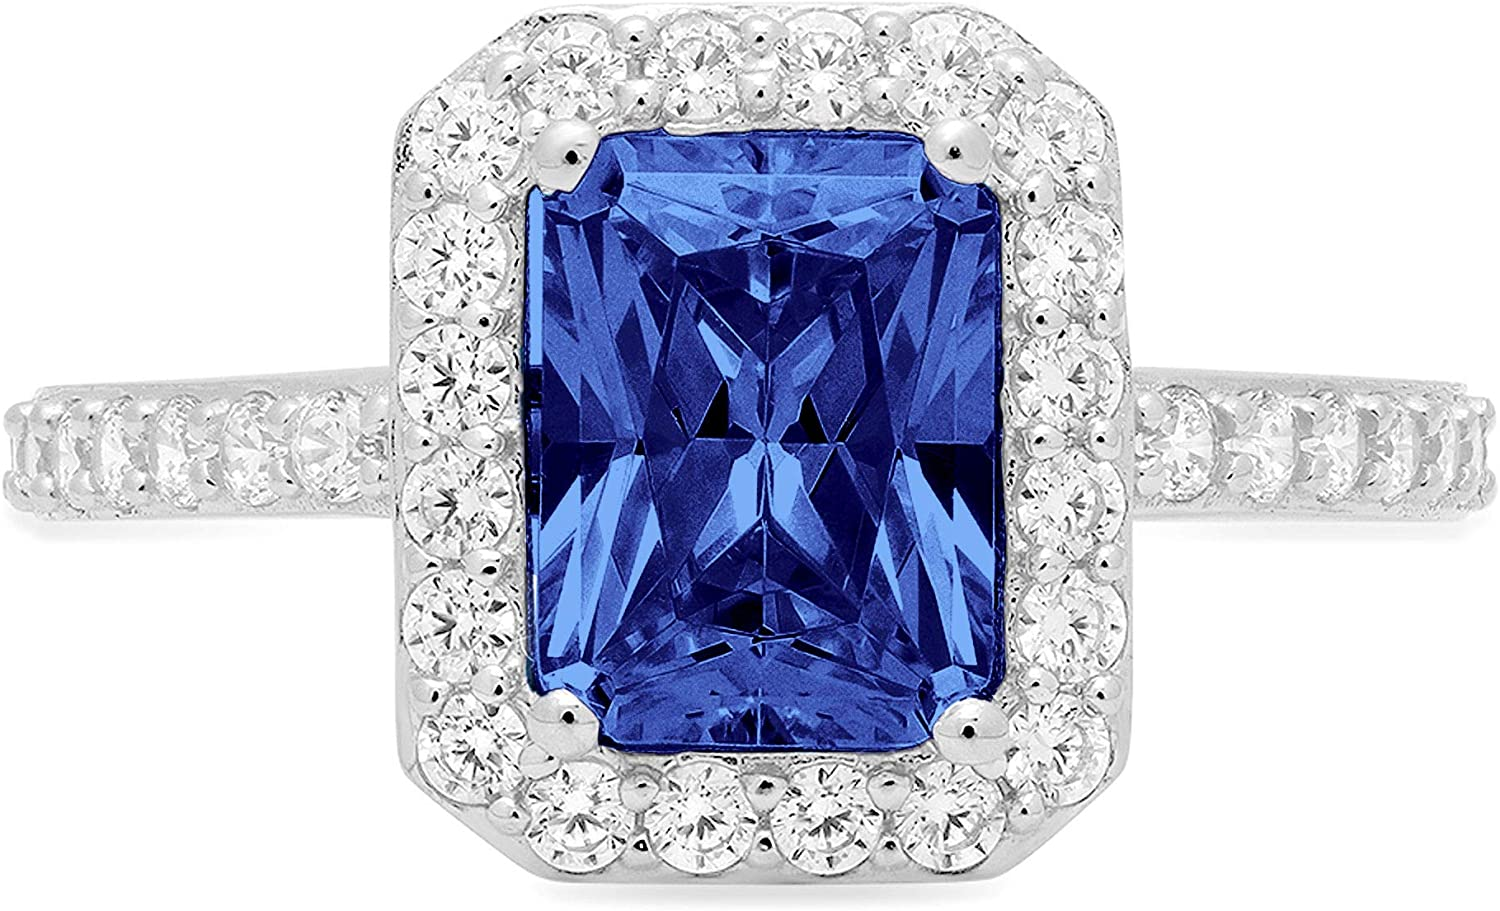 2.12 Brilliant Emerald Cut Solitaire with Accent Halo Stunning Genuine Flawless Simulated Blue Tanzanite Modern Promise Designer Ring 14k White Gold